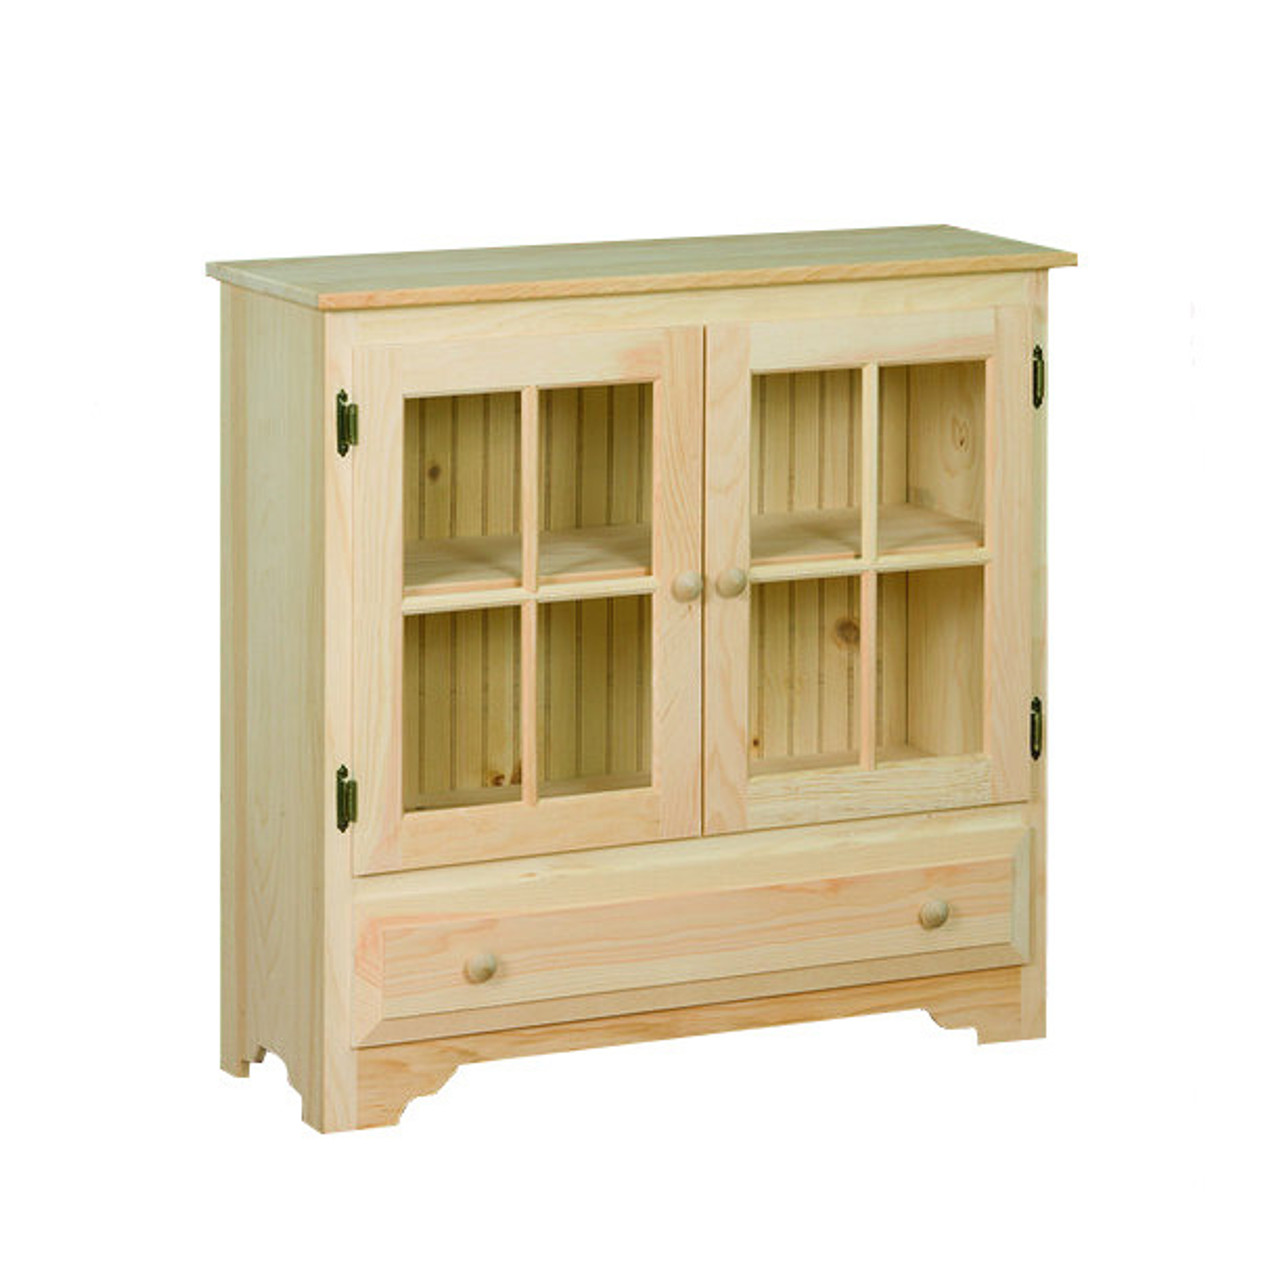 Rosedale One Drawer Two Door Pantry Cabinet 13 X 36 X 35 Pine